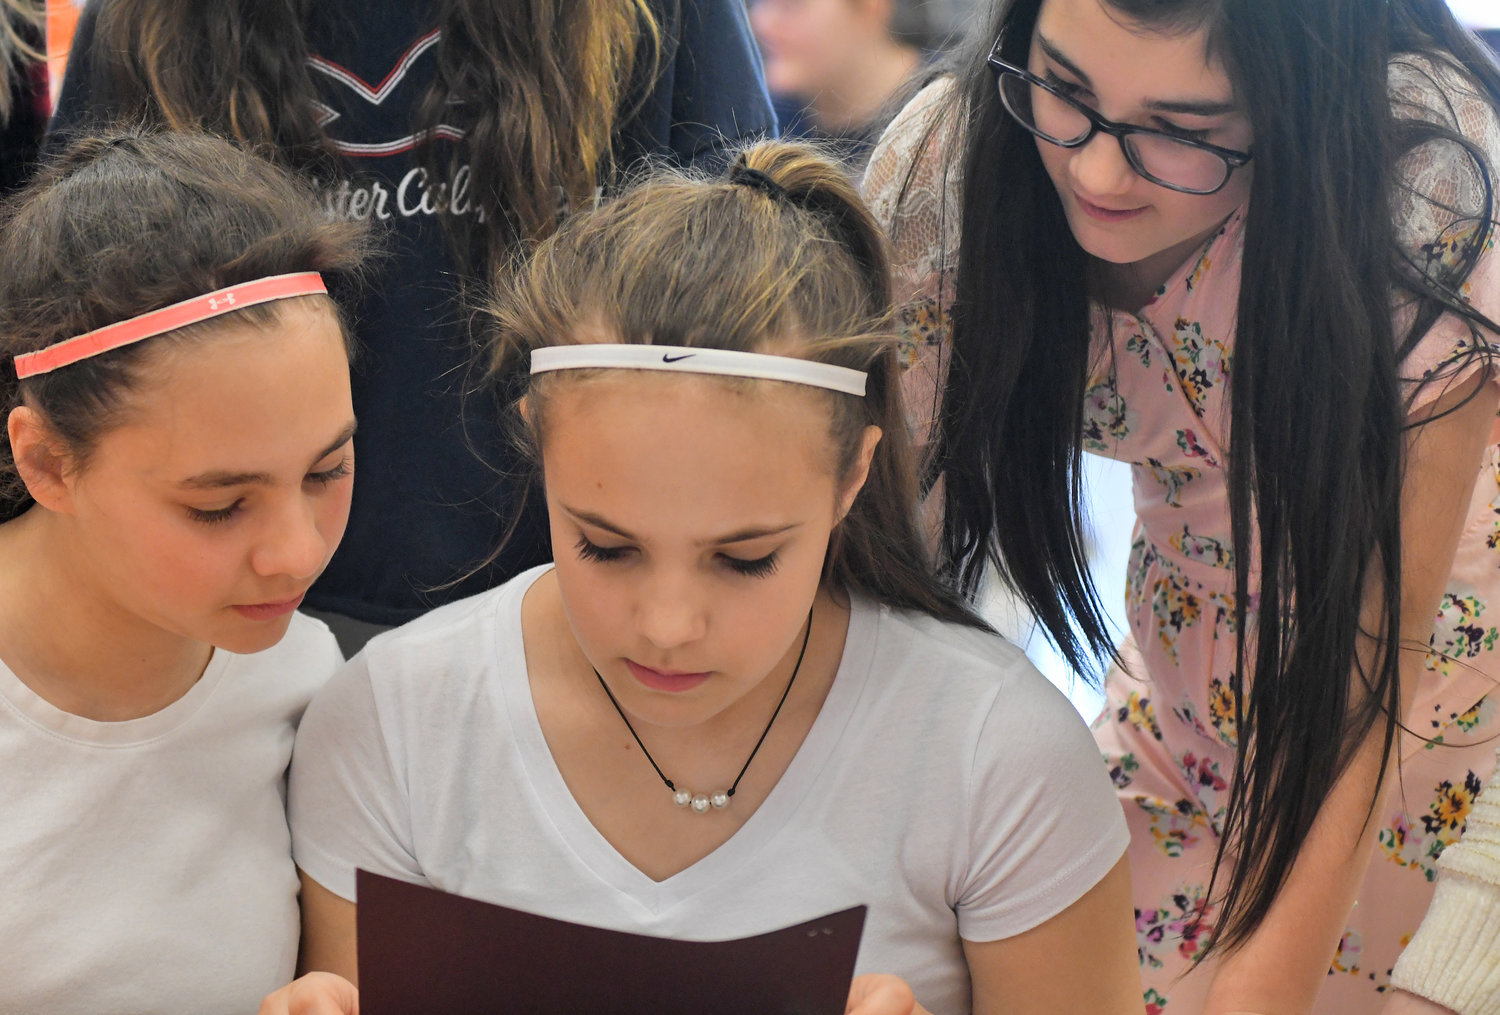 "GETTING THE WORDS — From left, Ridge Mills Elementary School sixth-graders Mariana Ciccone, Gracie Lucia and Lily Mirabelli look over a story during a reading session Thursday at the school, as part of a literacy event whose theme involved paying it forward and acts of kindness. A sixth-grade writing project included students reading the book ""Paying it Forward"" by Catherine Ryan Hyde and then producing literary works in genres such as historical fiction, realistic fiction, poetry and plays. Implementing the project were sixth-grade teachers Sue Kaier and Kristin King along with resource teacher Tom Gates."